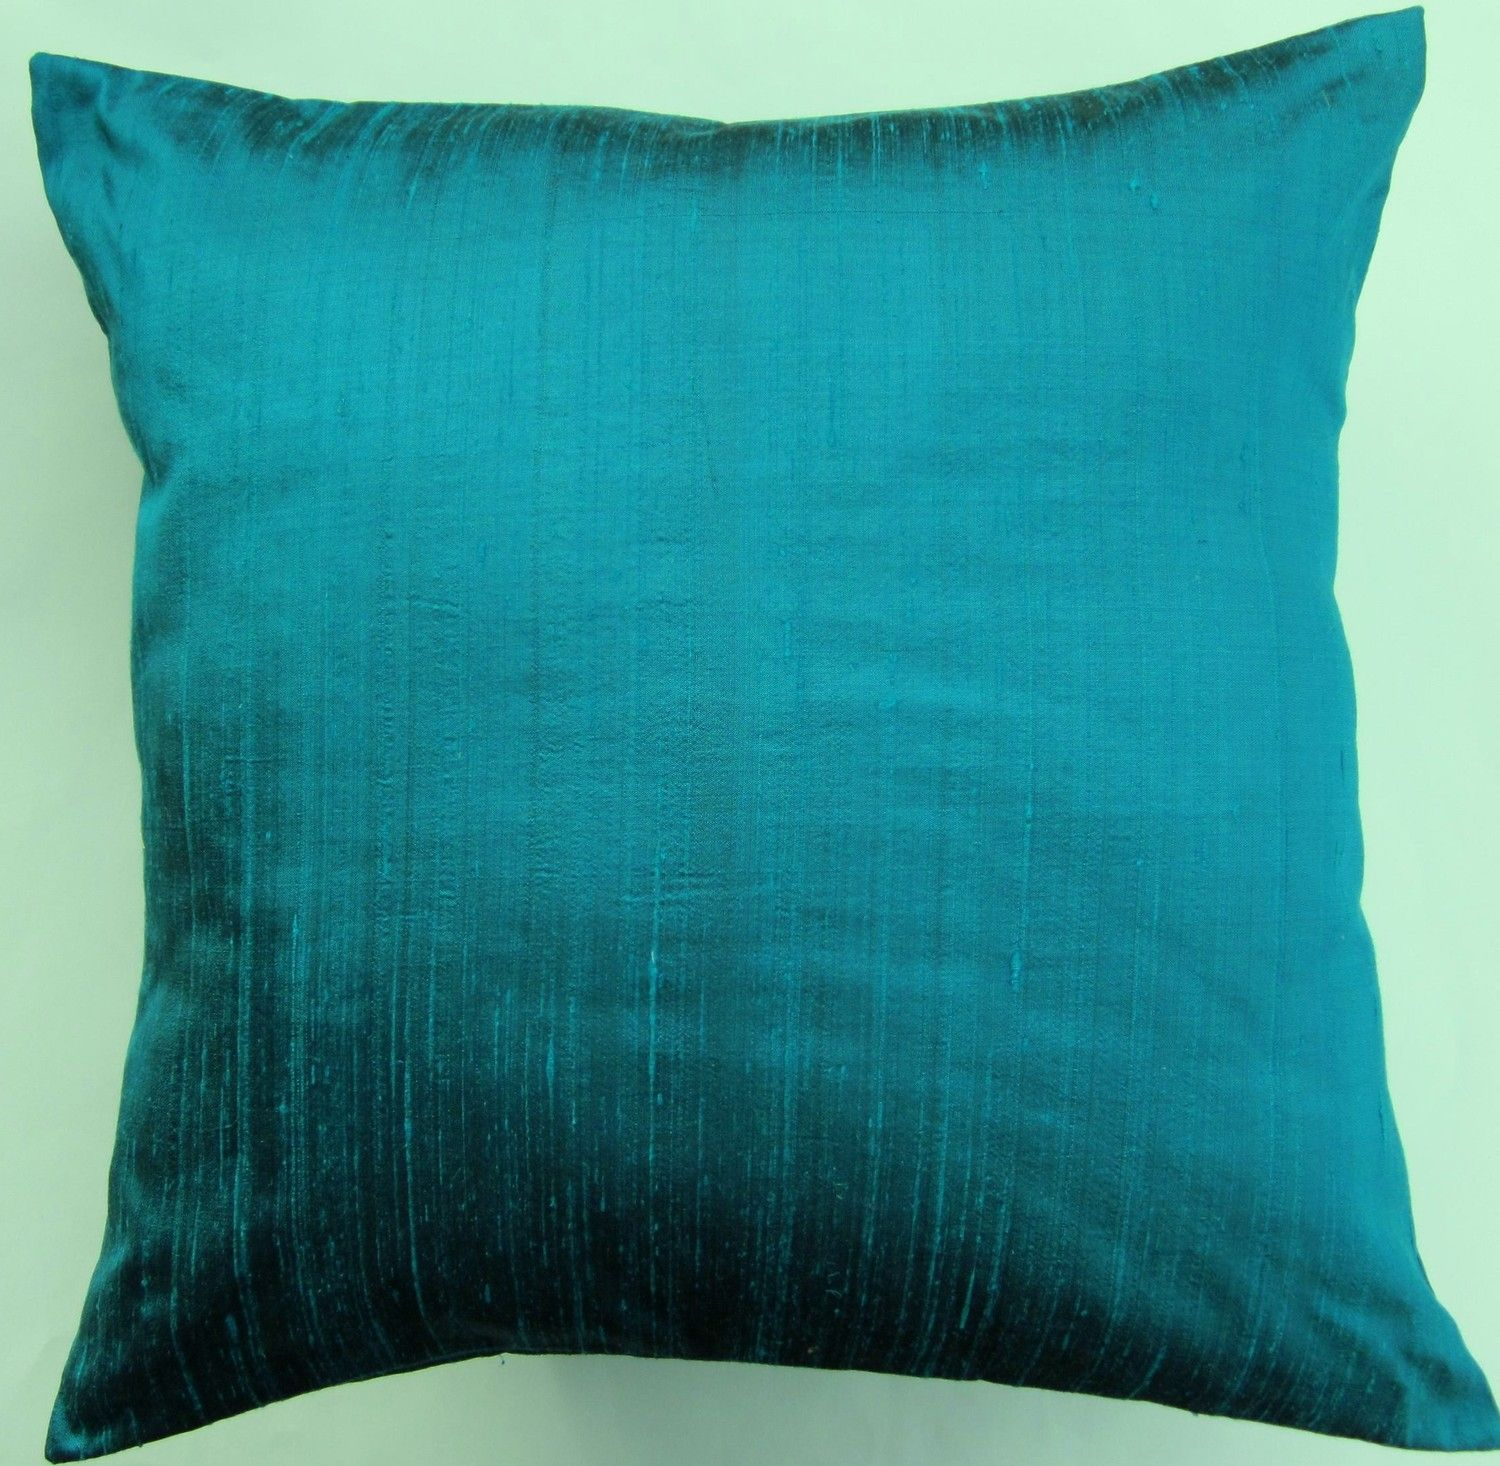 Turquoise Pillow Cover Turquoise Throw Pillow Cover